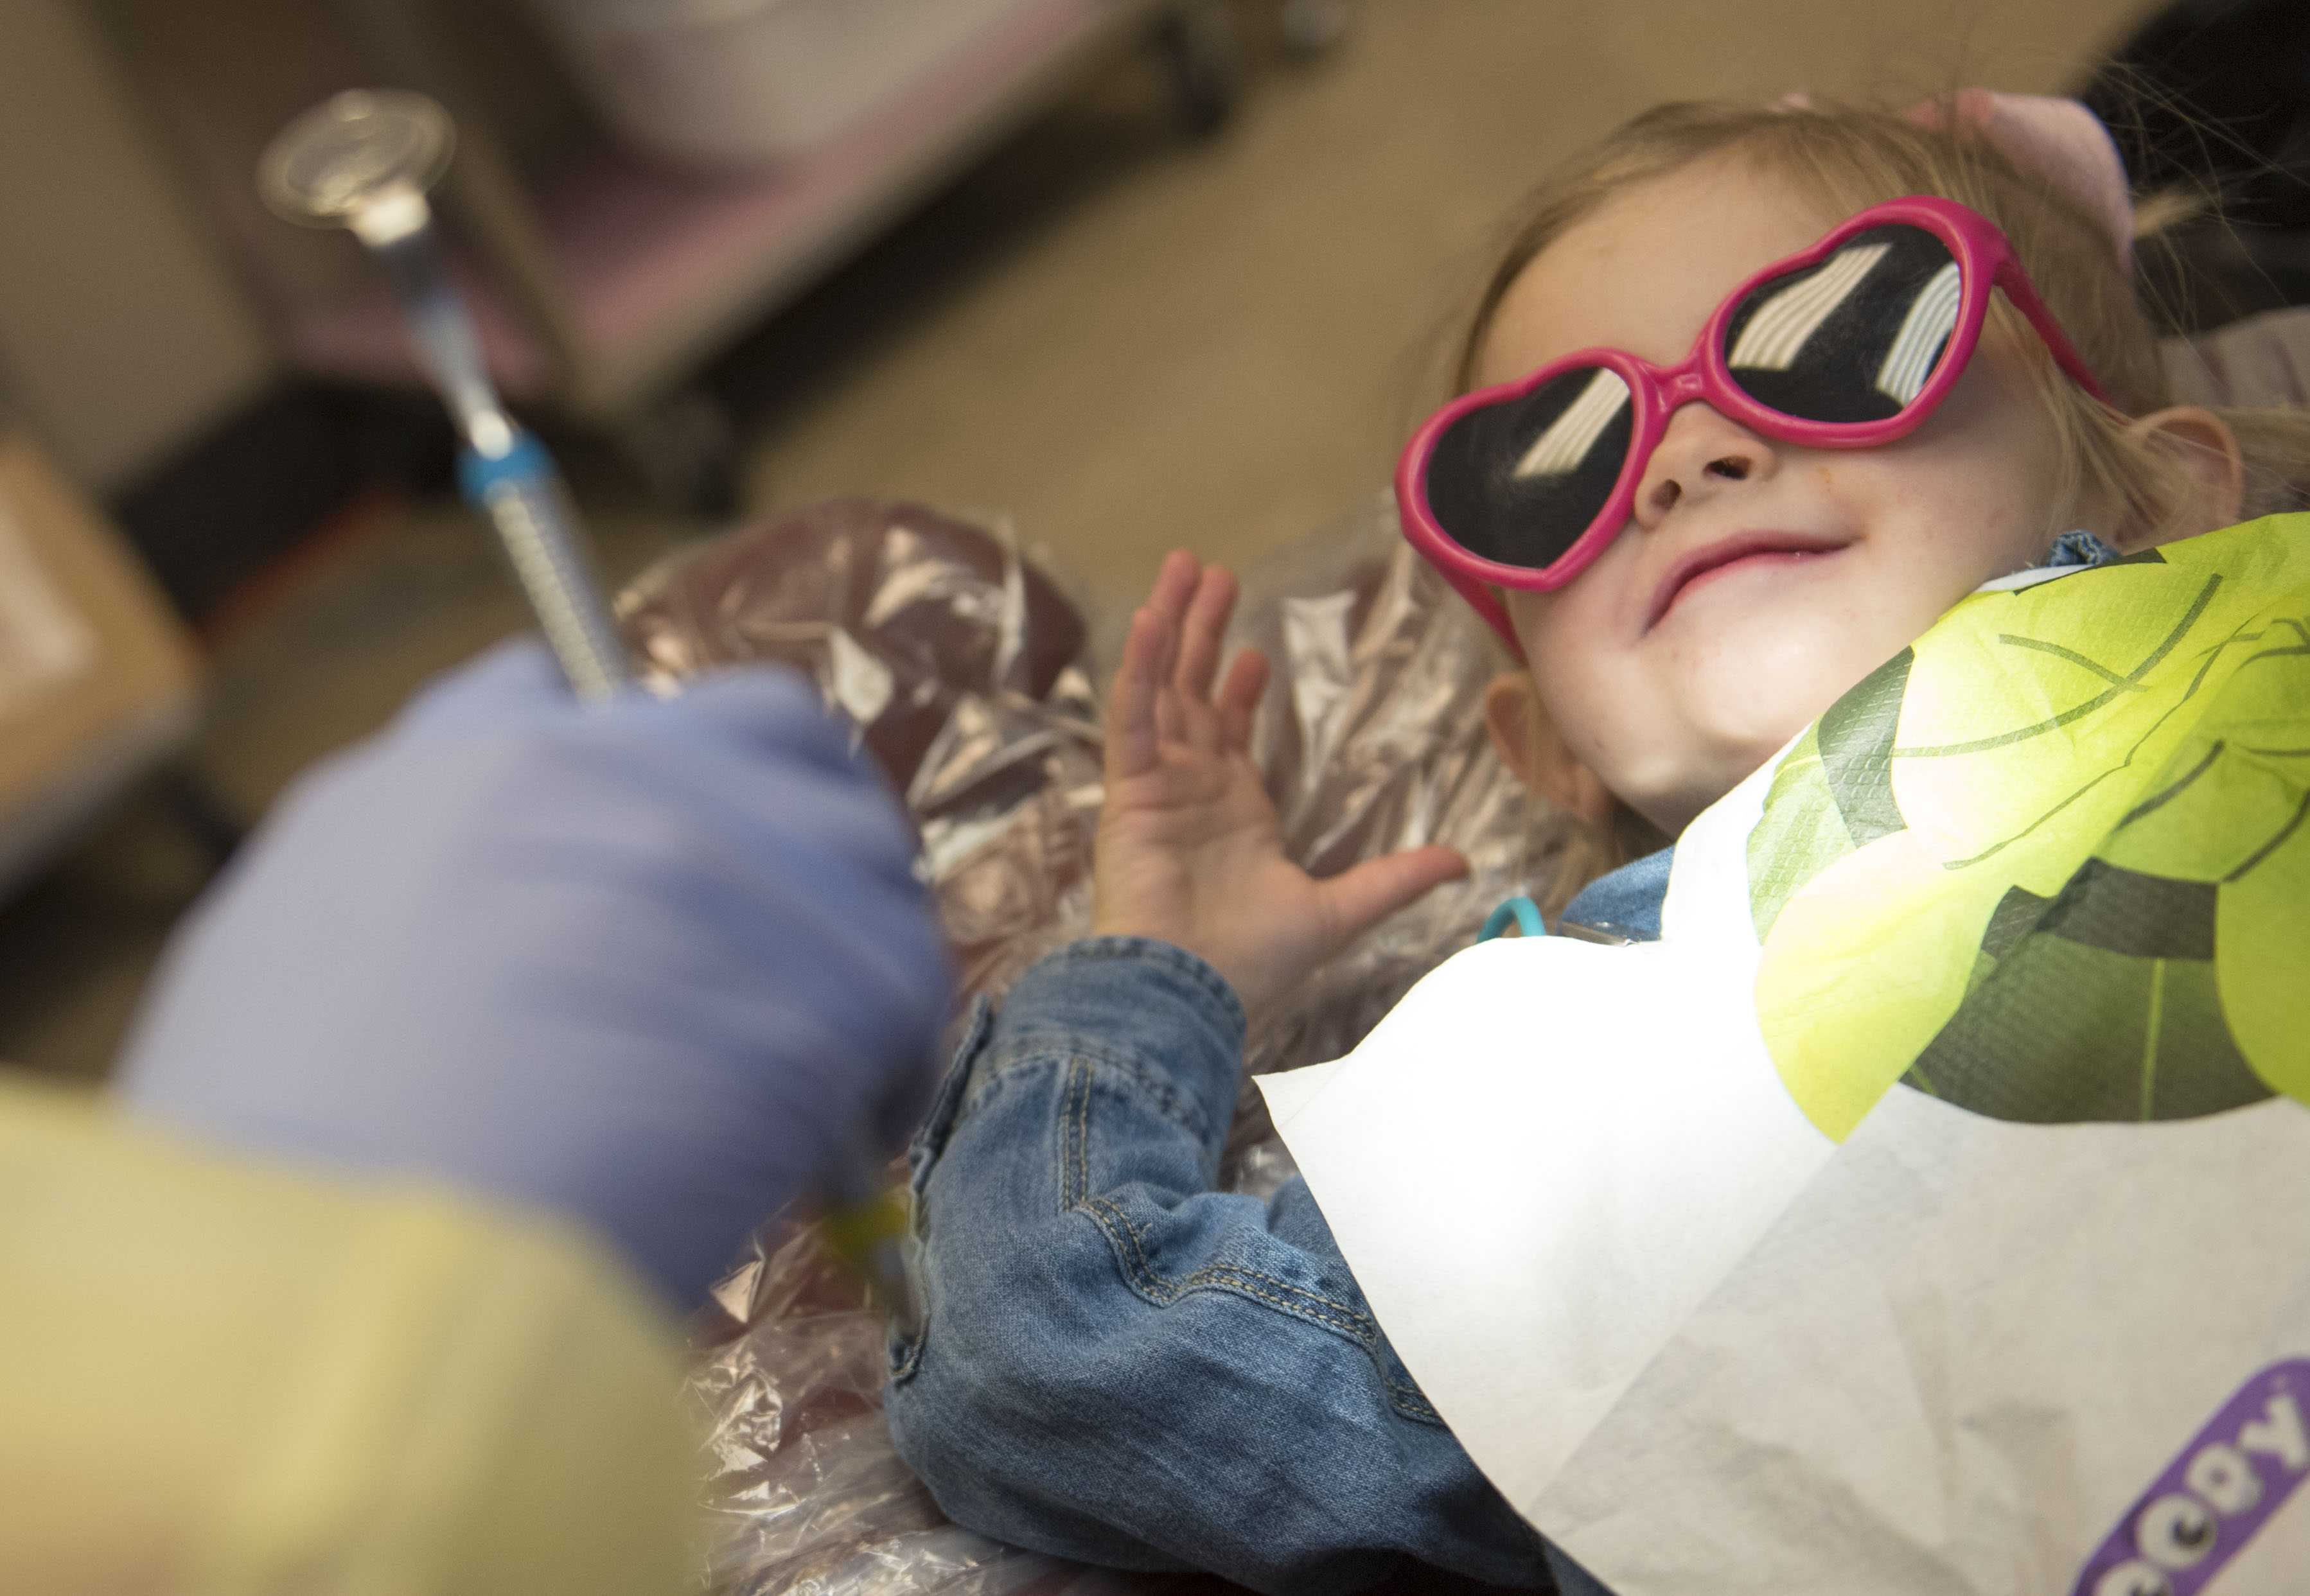 "Reagan Zahn, 2, receives her first dental checkup from her aunt, Katelyn Horan, on Friday, March 3, 2017, at the SIU Community Dental Center. Horan, a junior from New Lenox in the university's dental hygiene program, treated her niece during ""Give Kids a Smile Day,"" an annual event coordinated by the Southern Illinois Dental Society and the Southern Illinois Dental Hygiene Society. Horan's sister, Melissa Zahn, traveled with Reagan from St. Louis to visit. ""It's nice for her first [dental checkup] that it's family,"" Zahn said. (Bill Lukitsch 